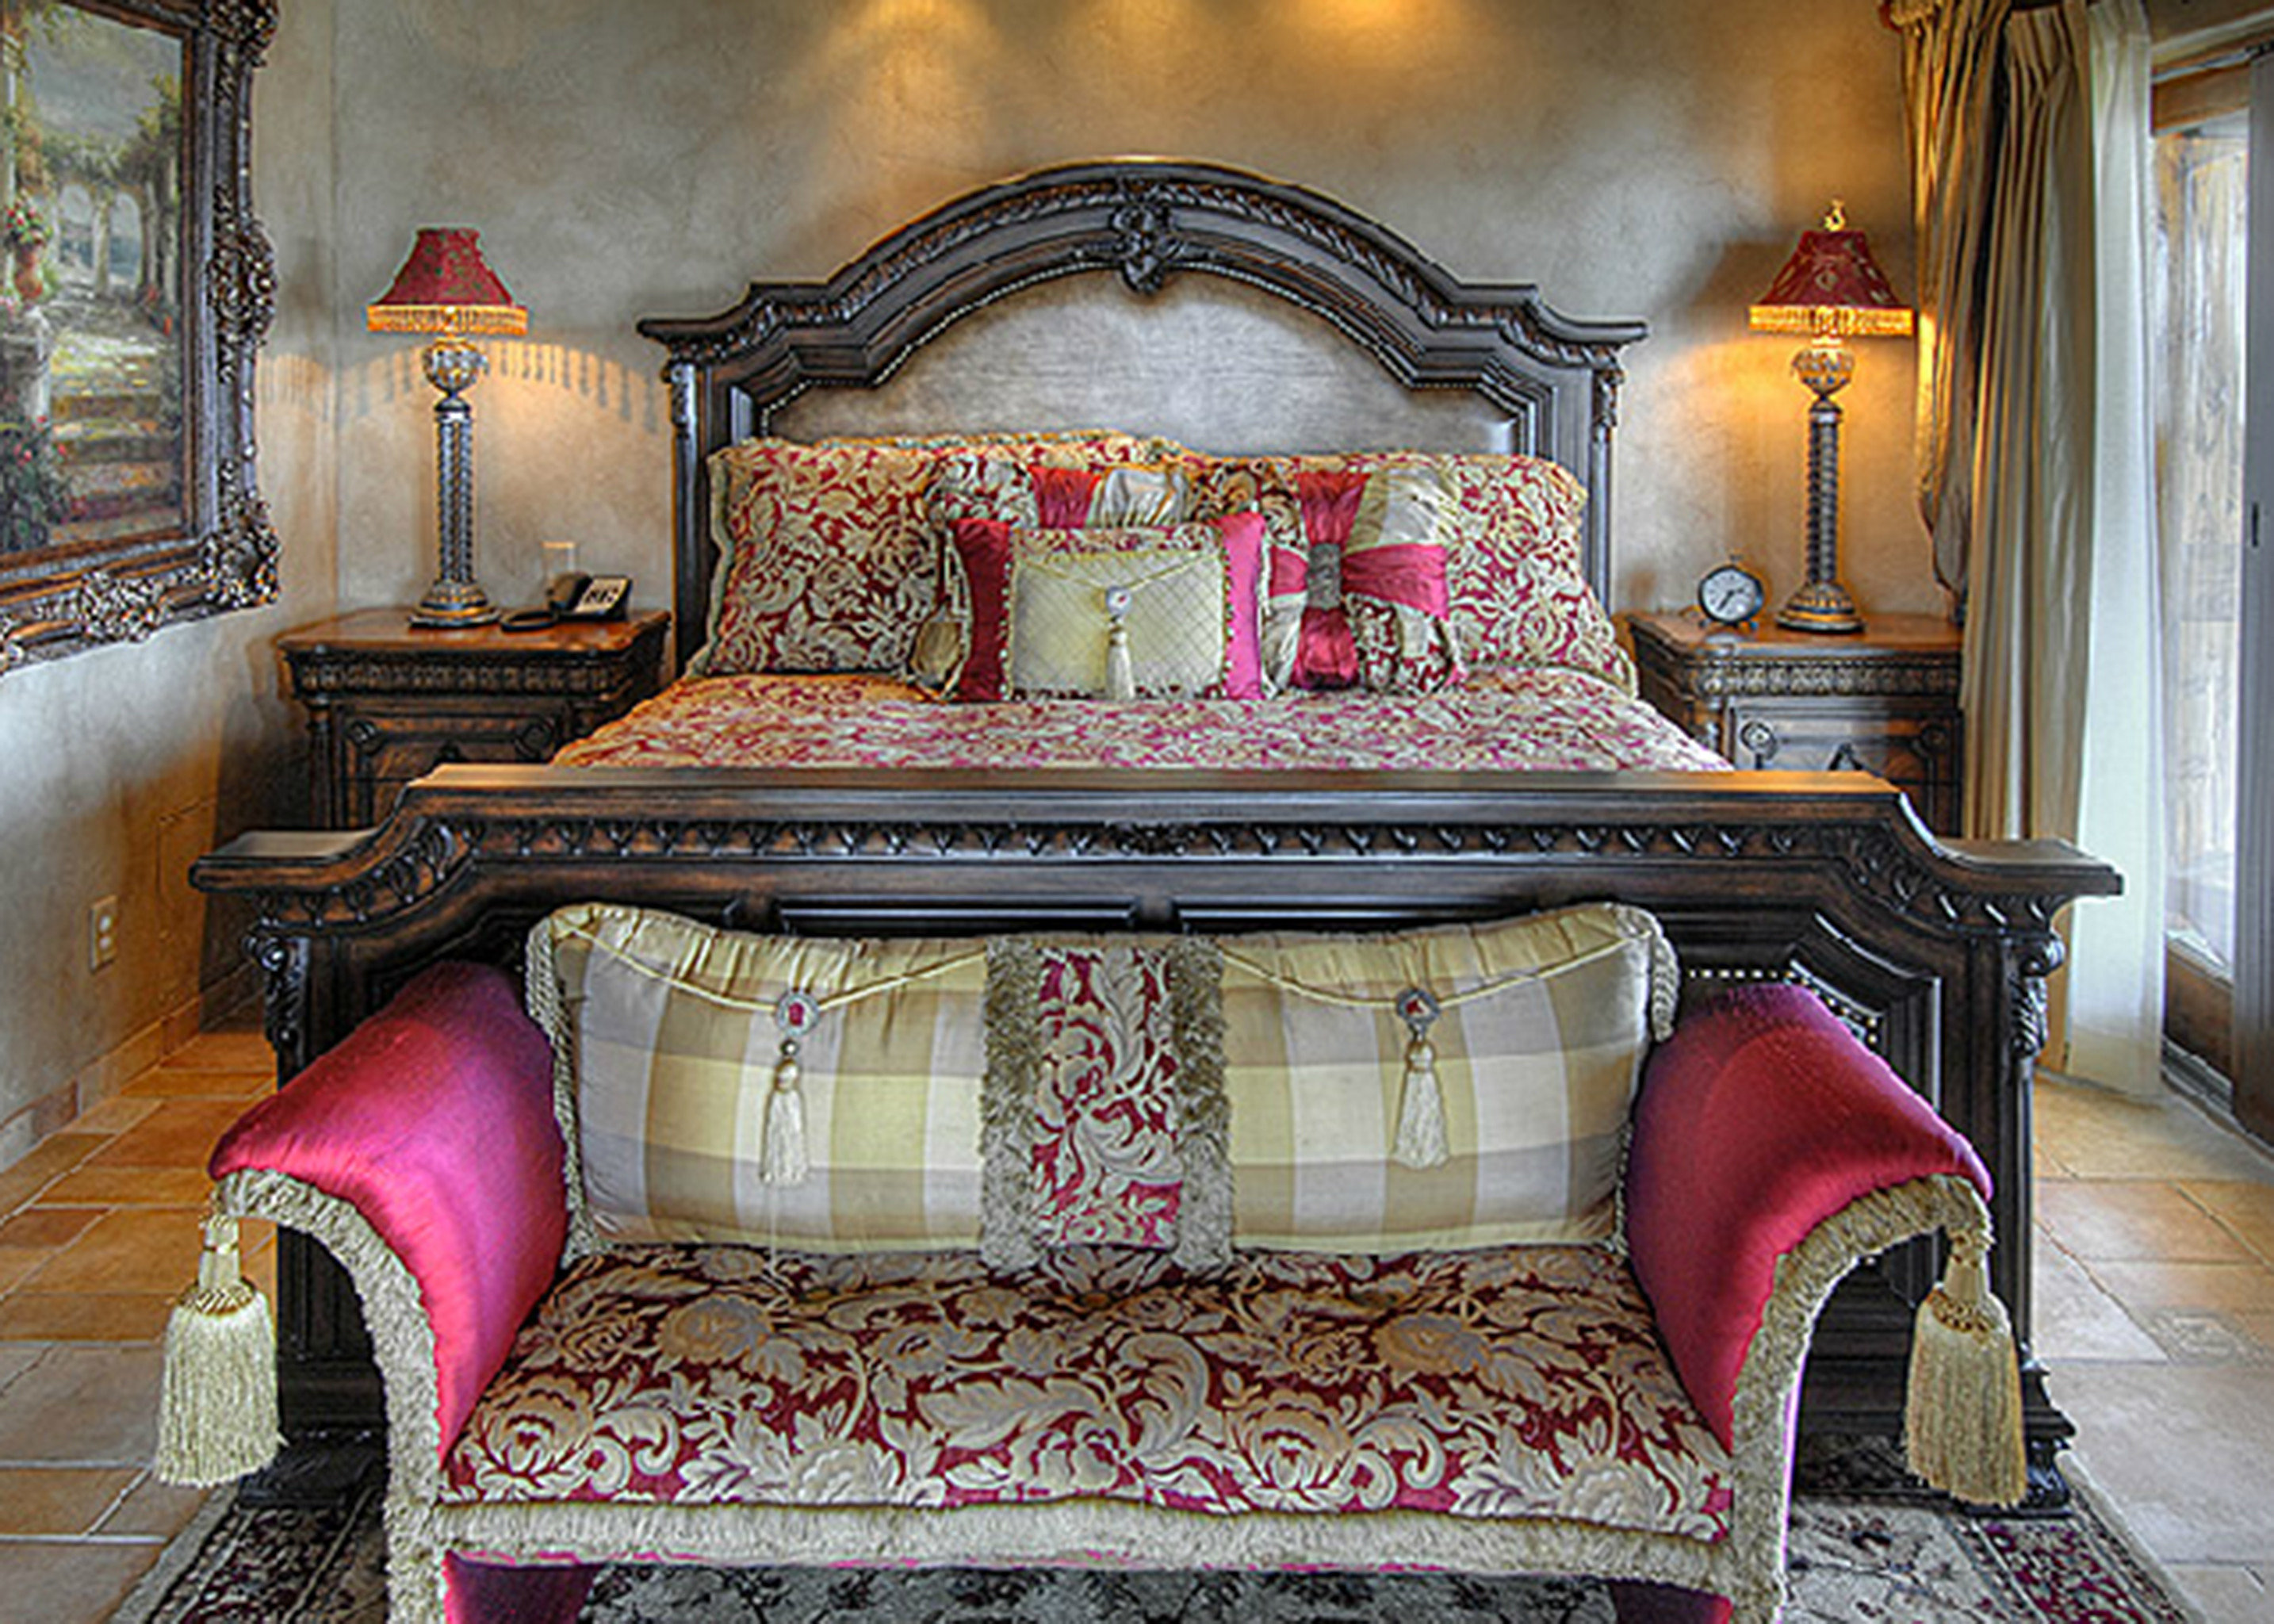 Bedroom Classic Elegant Historic Luxury Suite living room chair property home mansion bed sheet